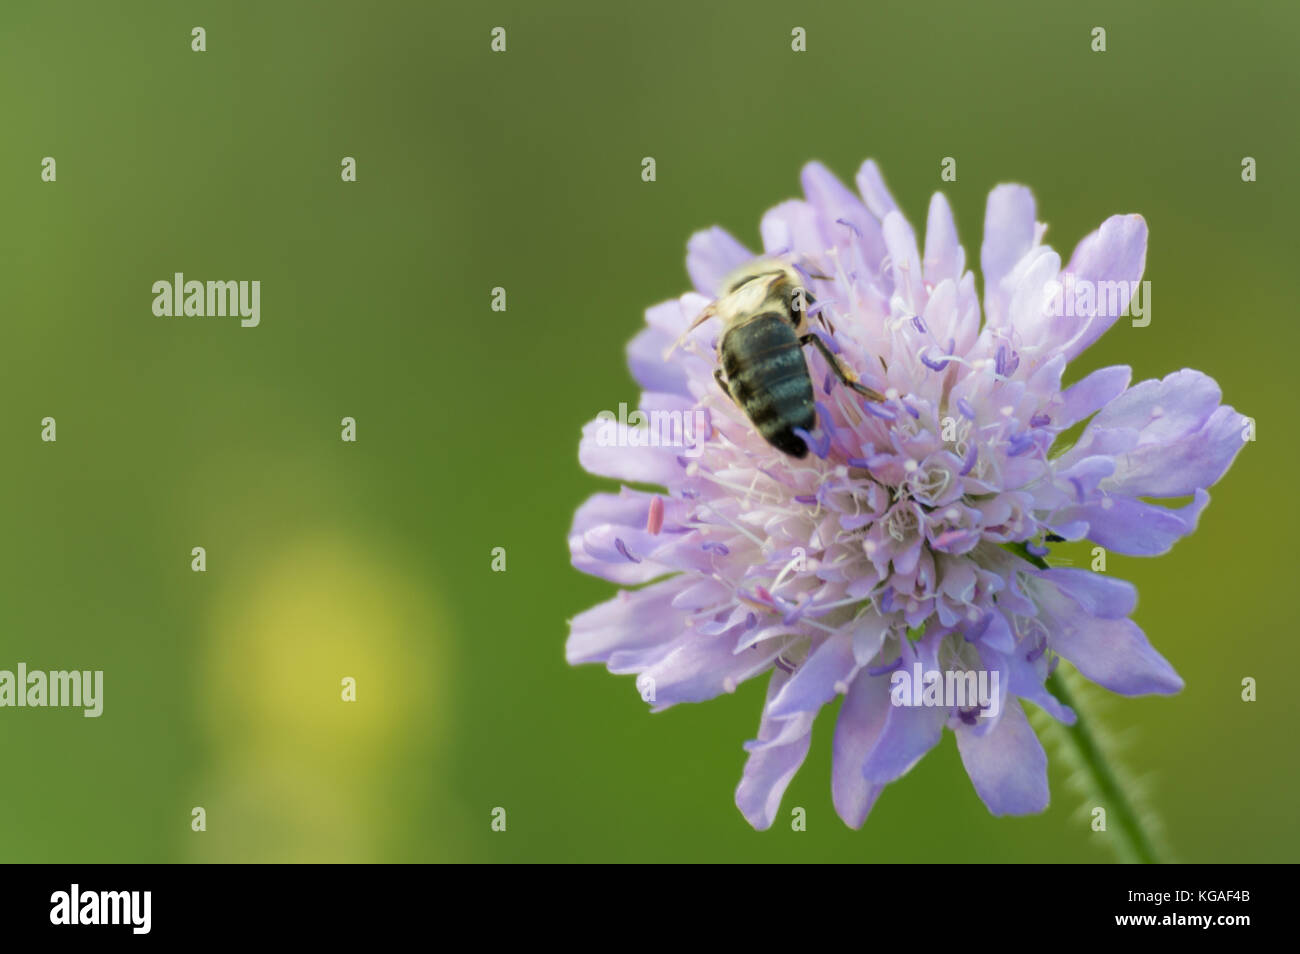 Bee collecting honey from pincushion flower - Stock Image